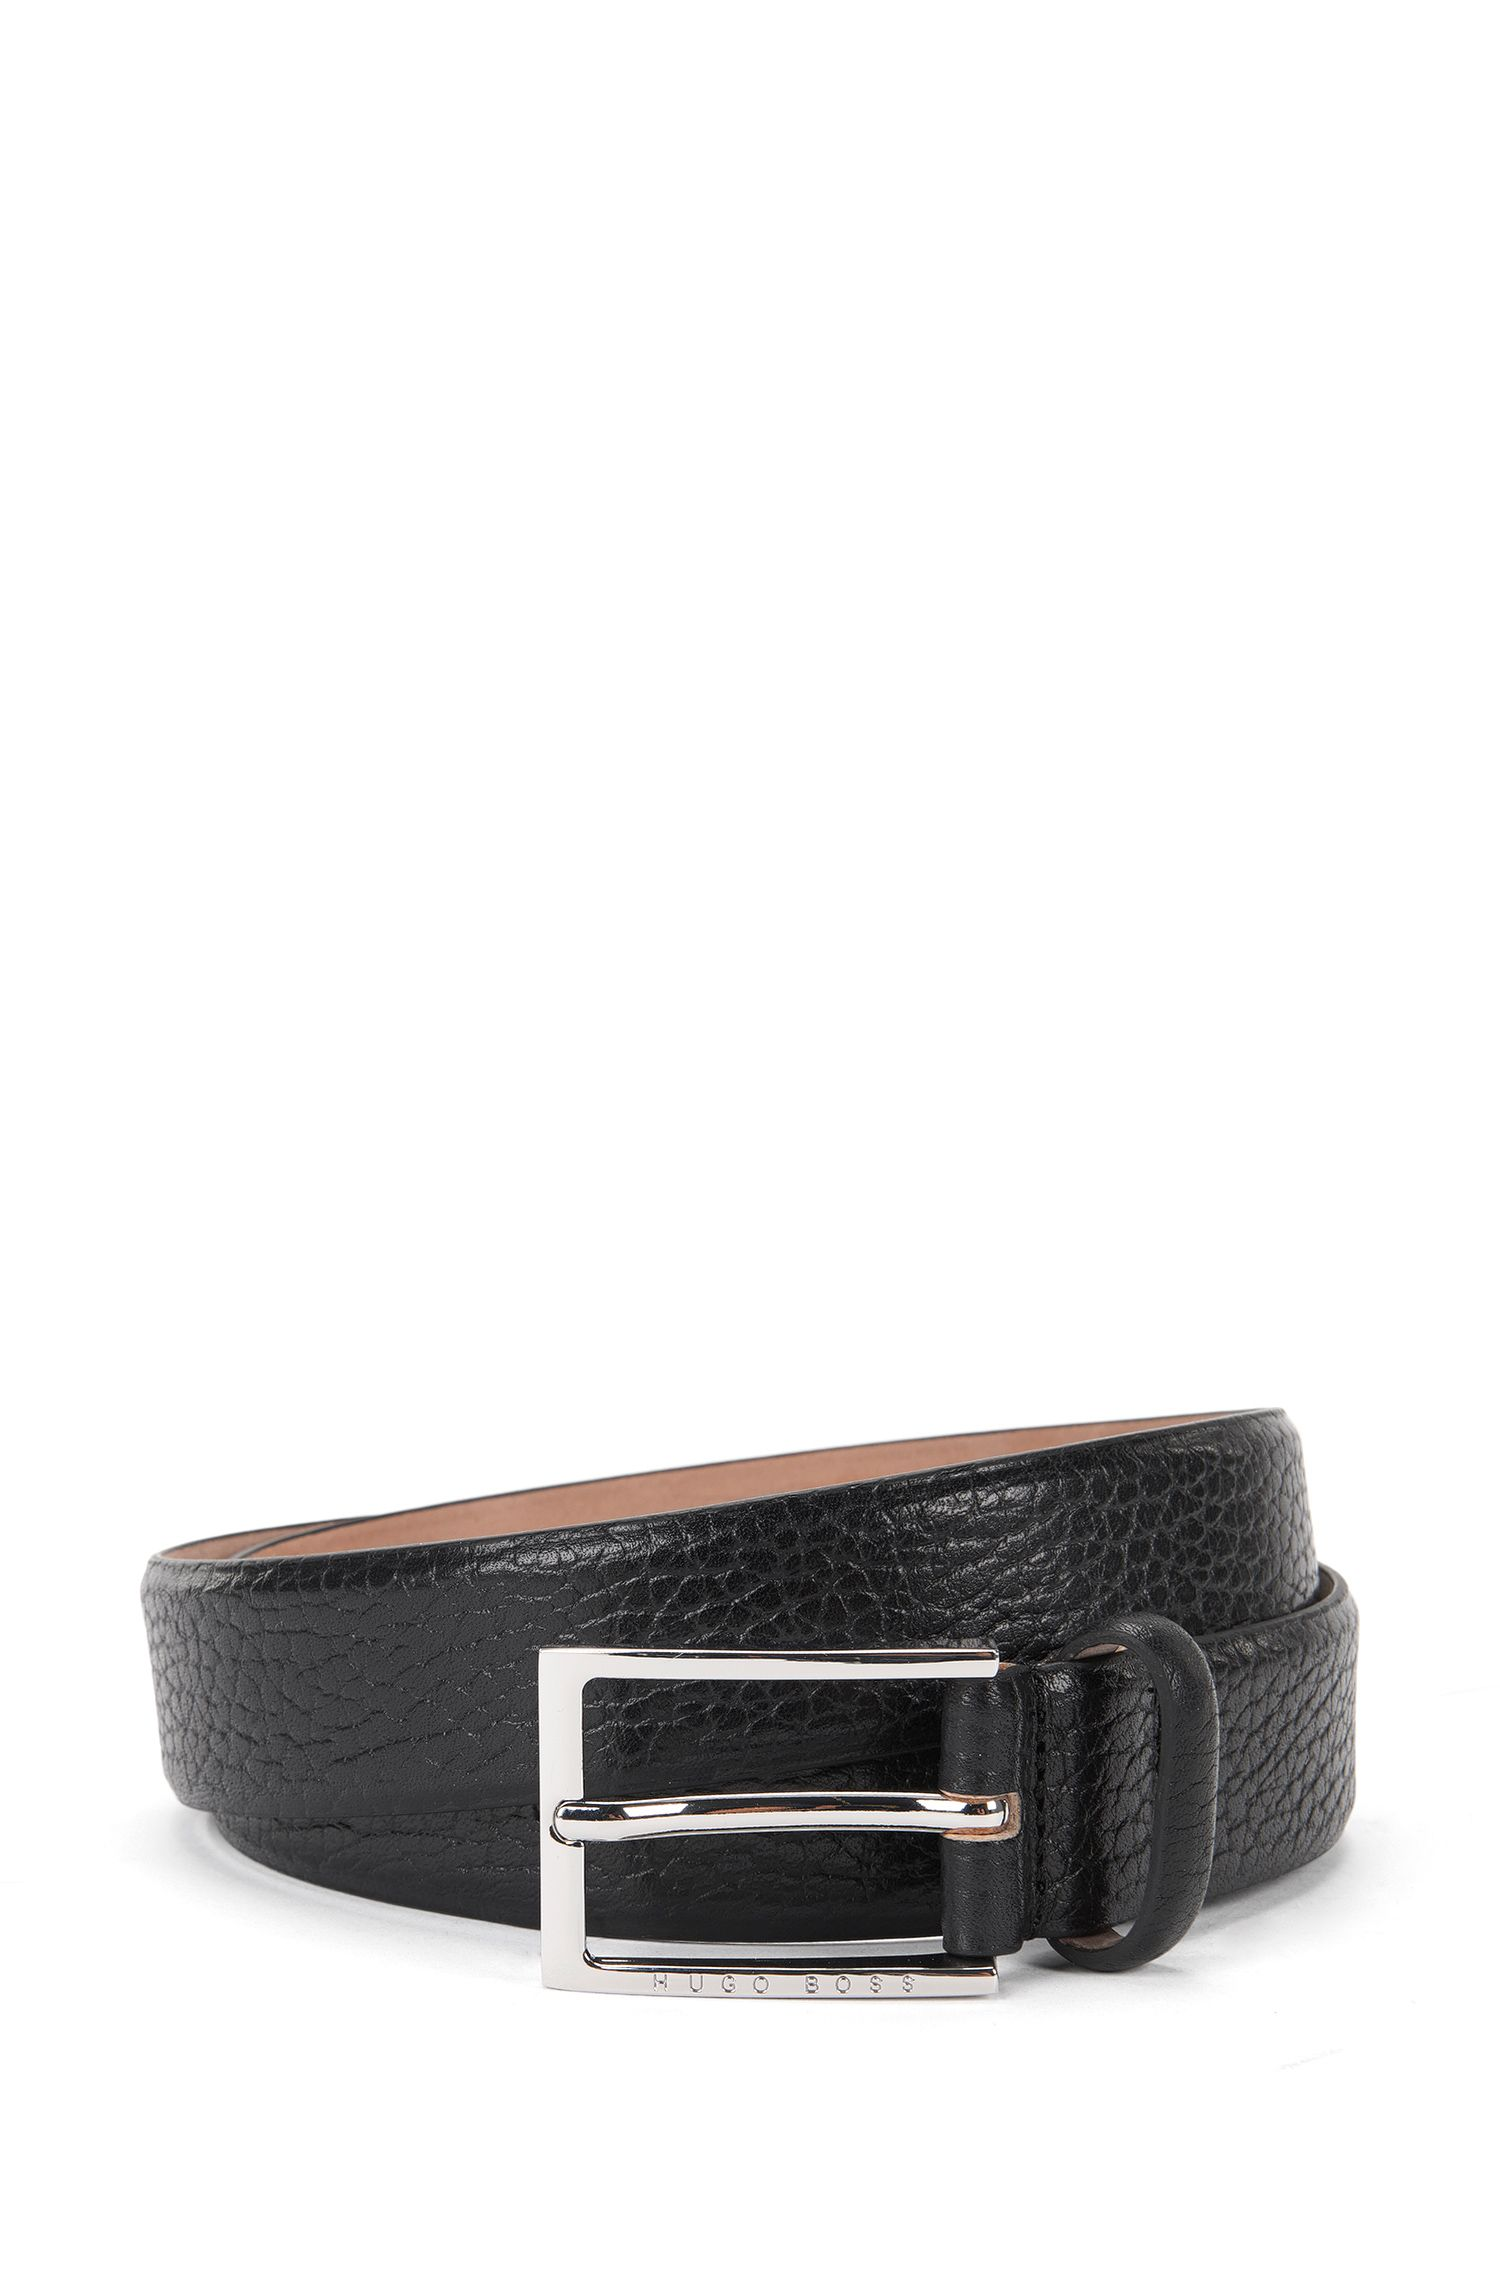 'Ceddyso' | Leather Grained Belt